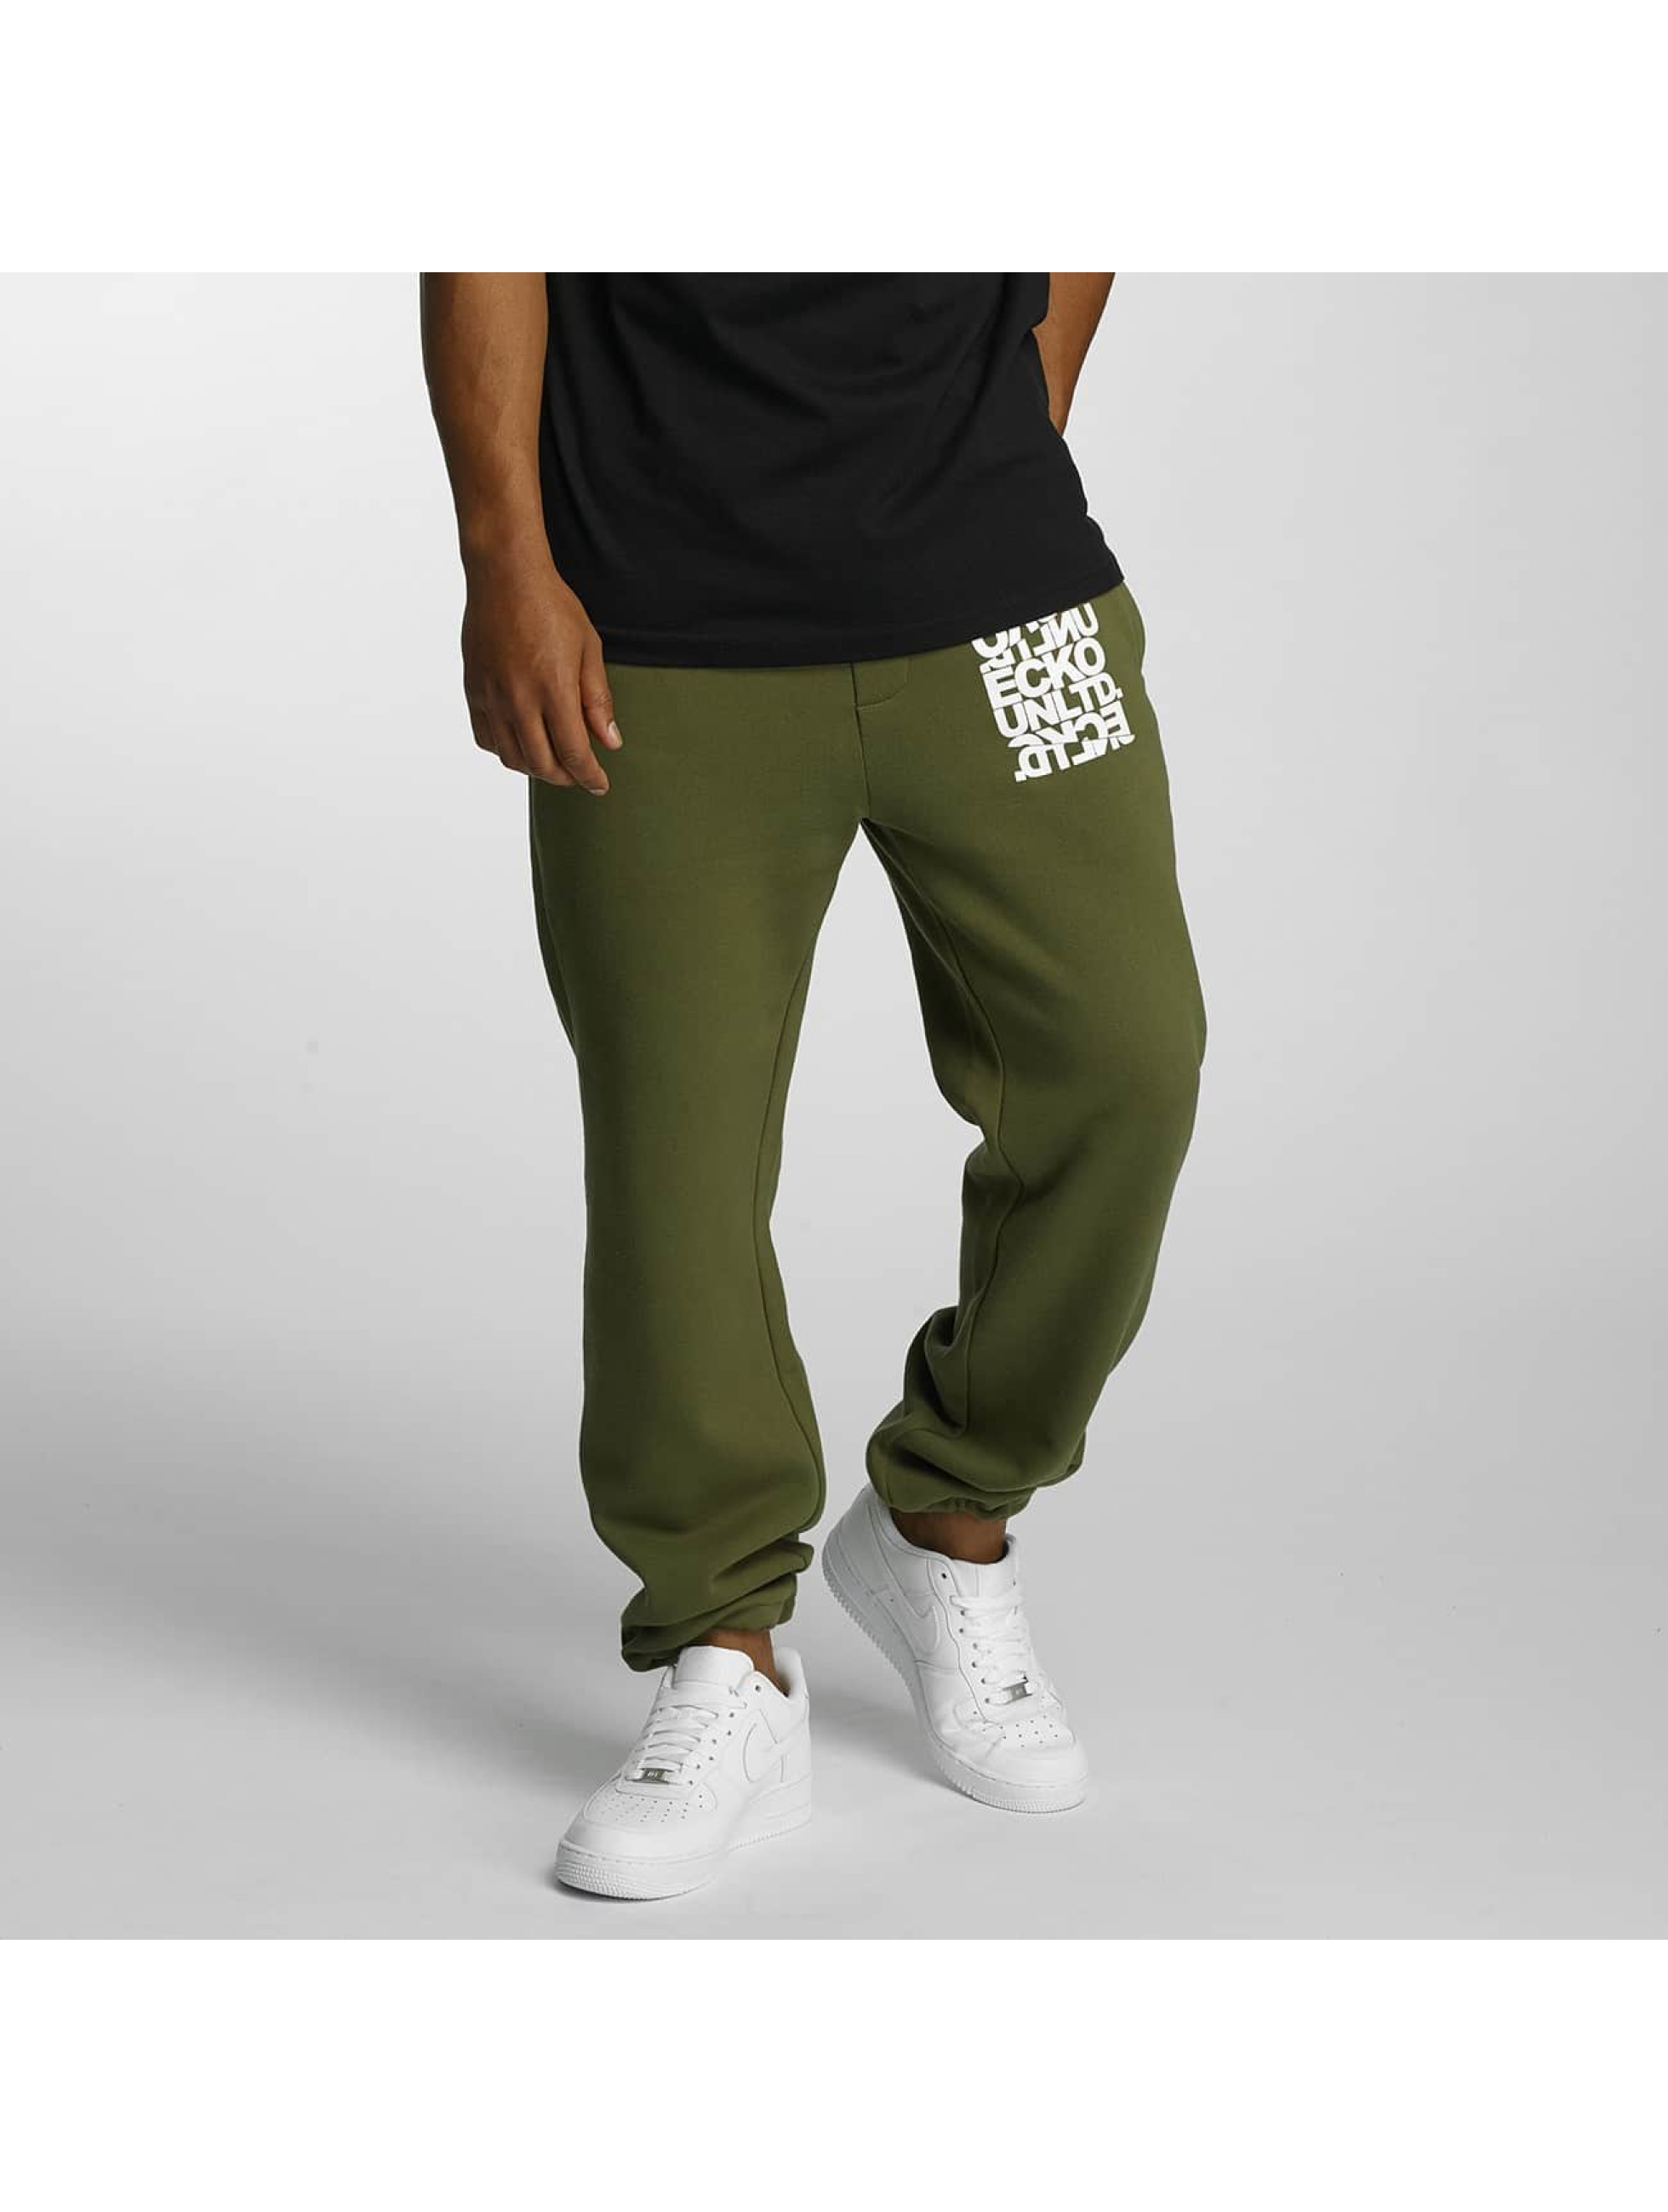 Ecko Unltd. Männer Jogginghose Joe in olive